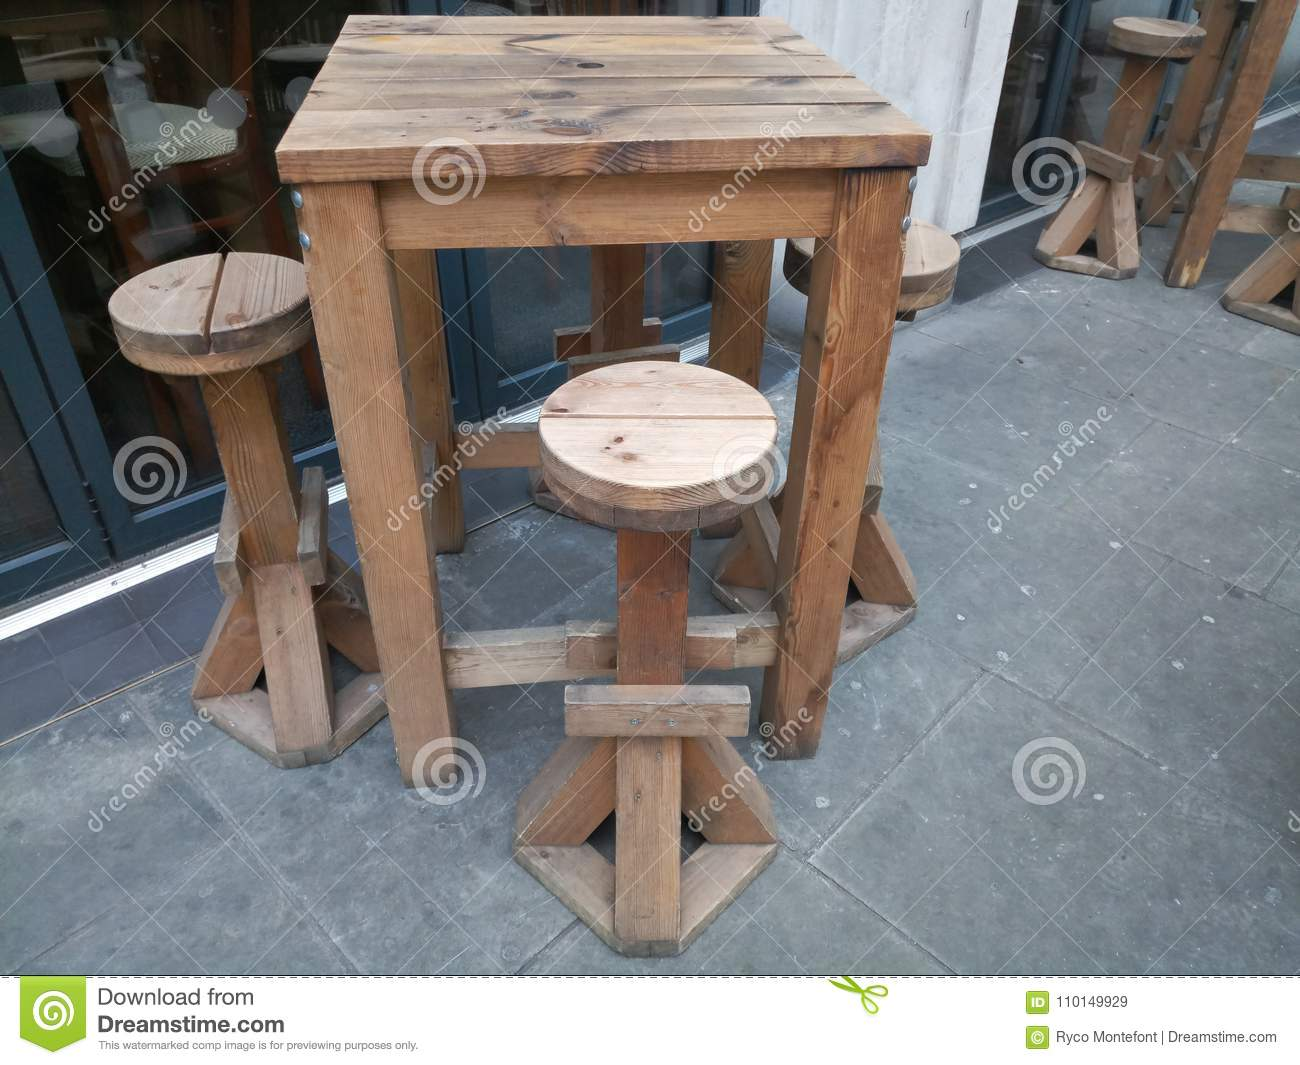 Outdoor Bar Table Stock Image Image Of Wooden Outdoor 110149929